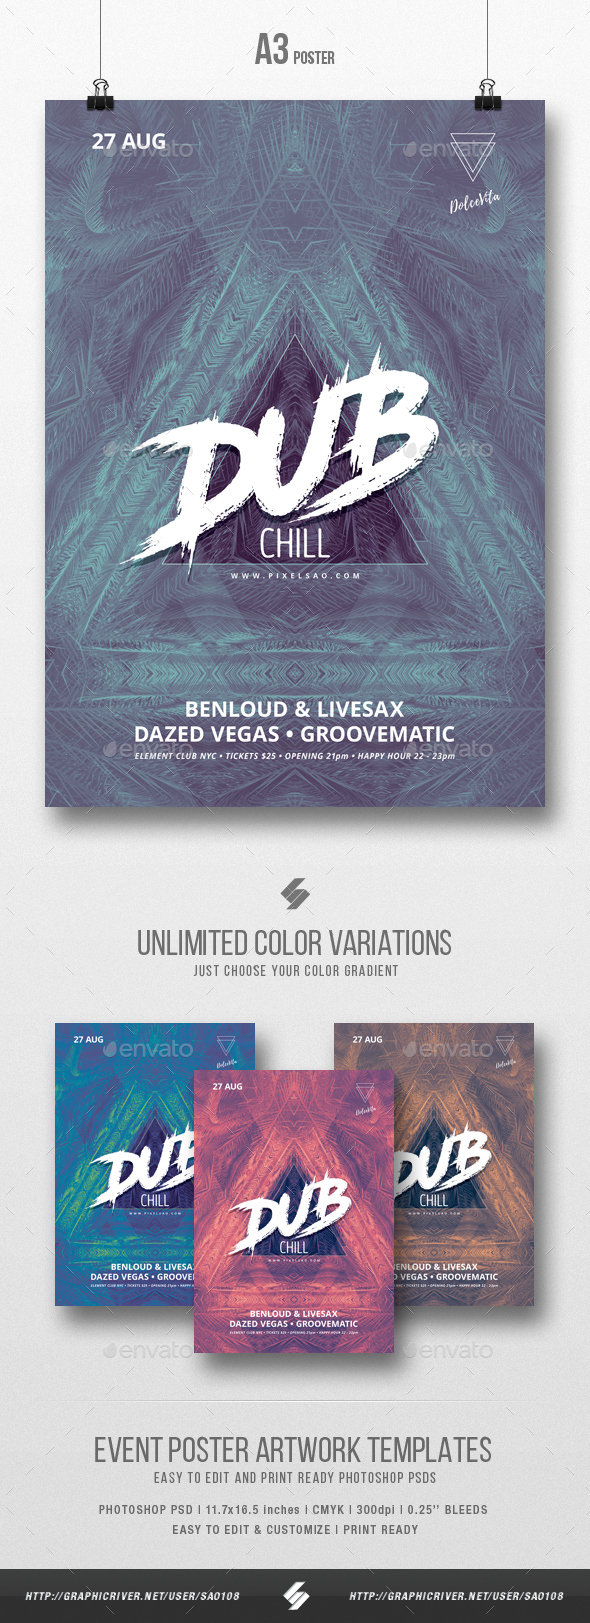 Dub Chill - Party Flyer / Poster Artwork Template A3 - Clubs & Parties Events